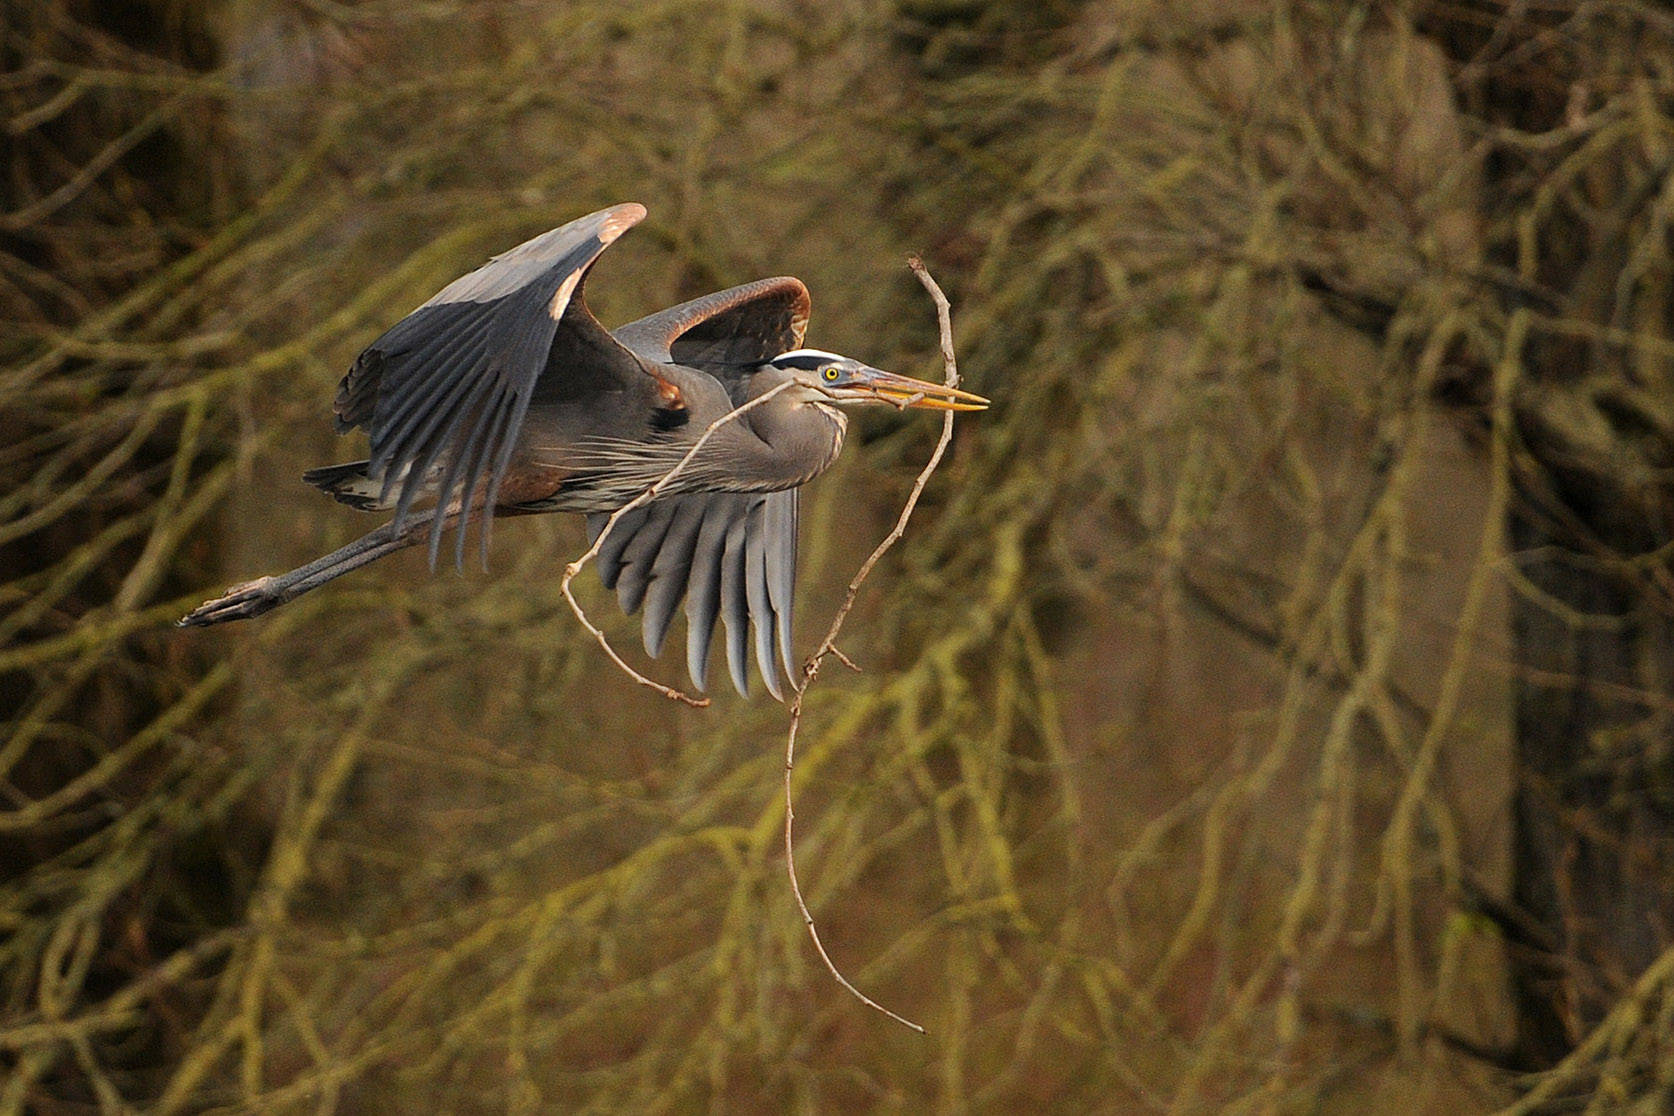 A heron brings a twig back to its nest at the Great Blue Heron Nature Reserve in Chilliwack on March 18, 2015. Tuesday, Jan. 5, 2021 is Bird Day. (Jenna Hauck/ Chilliwack Progress file)